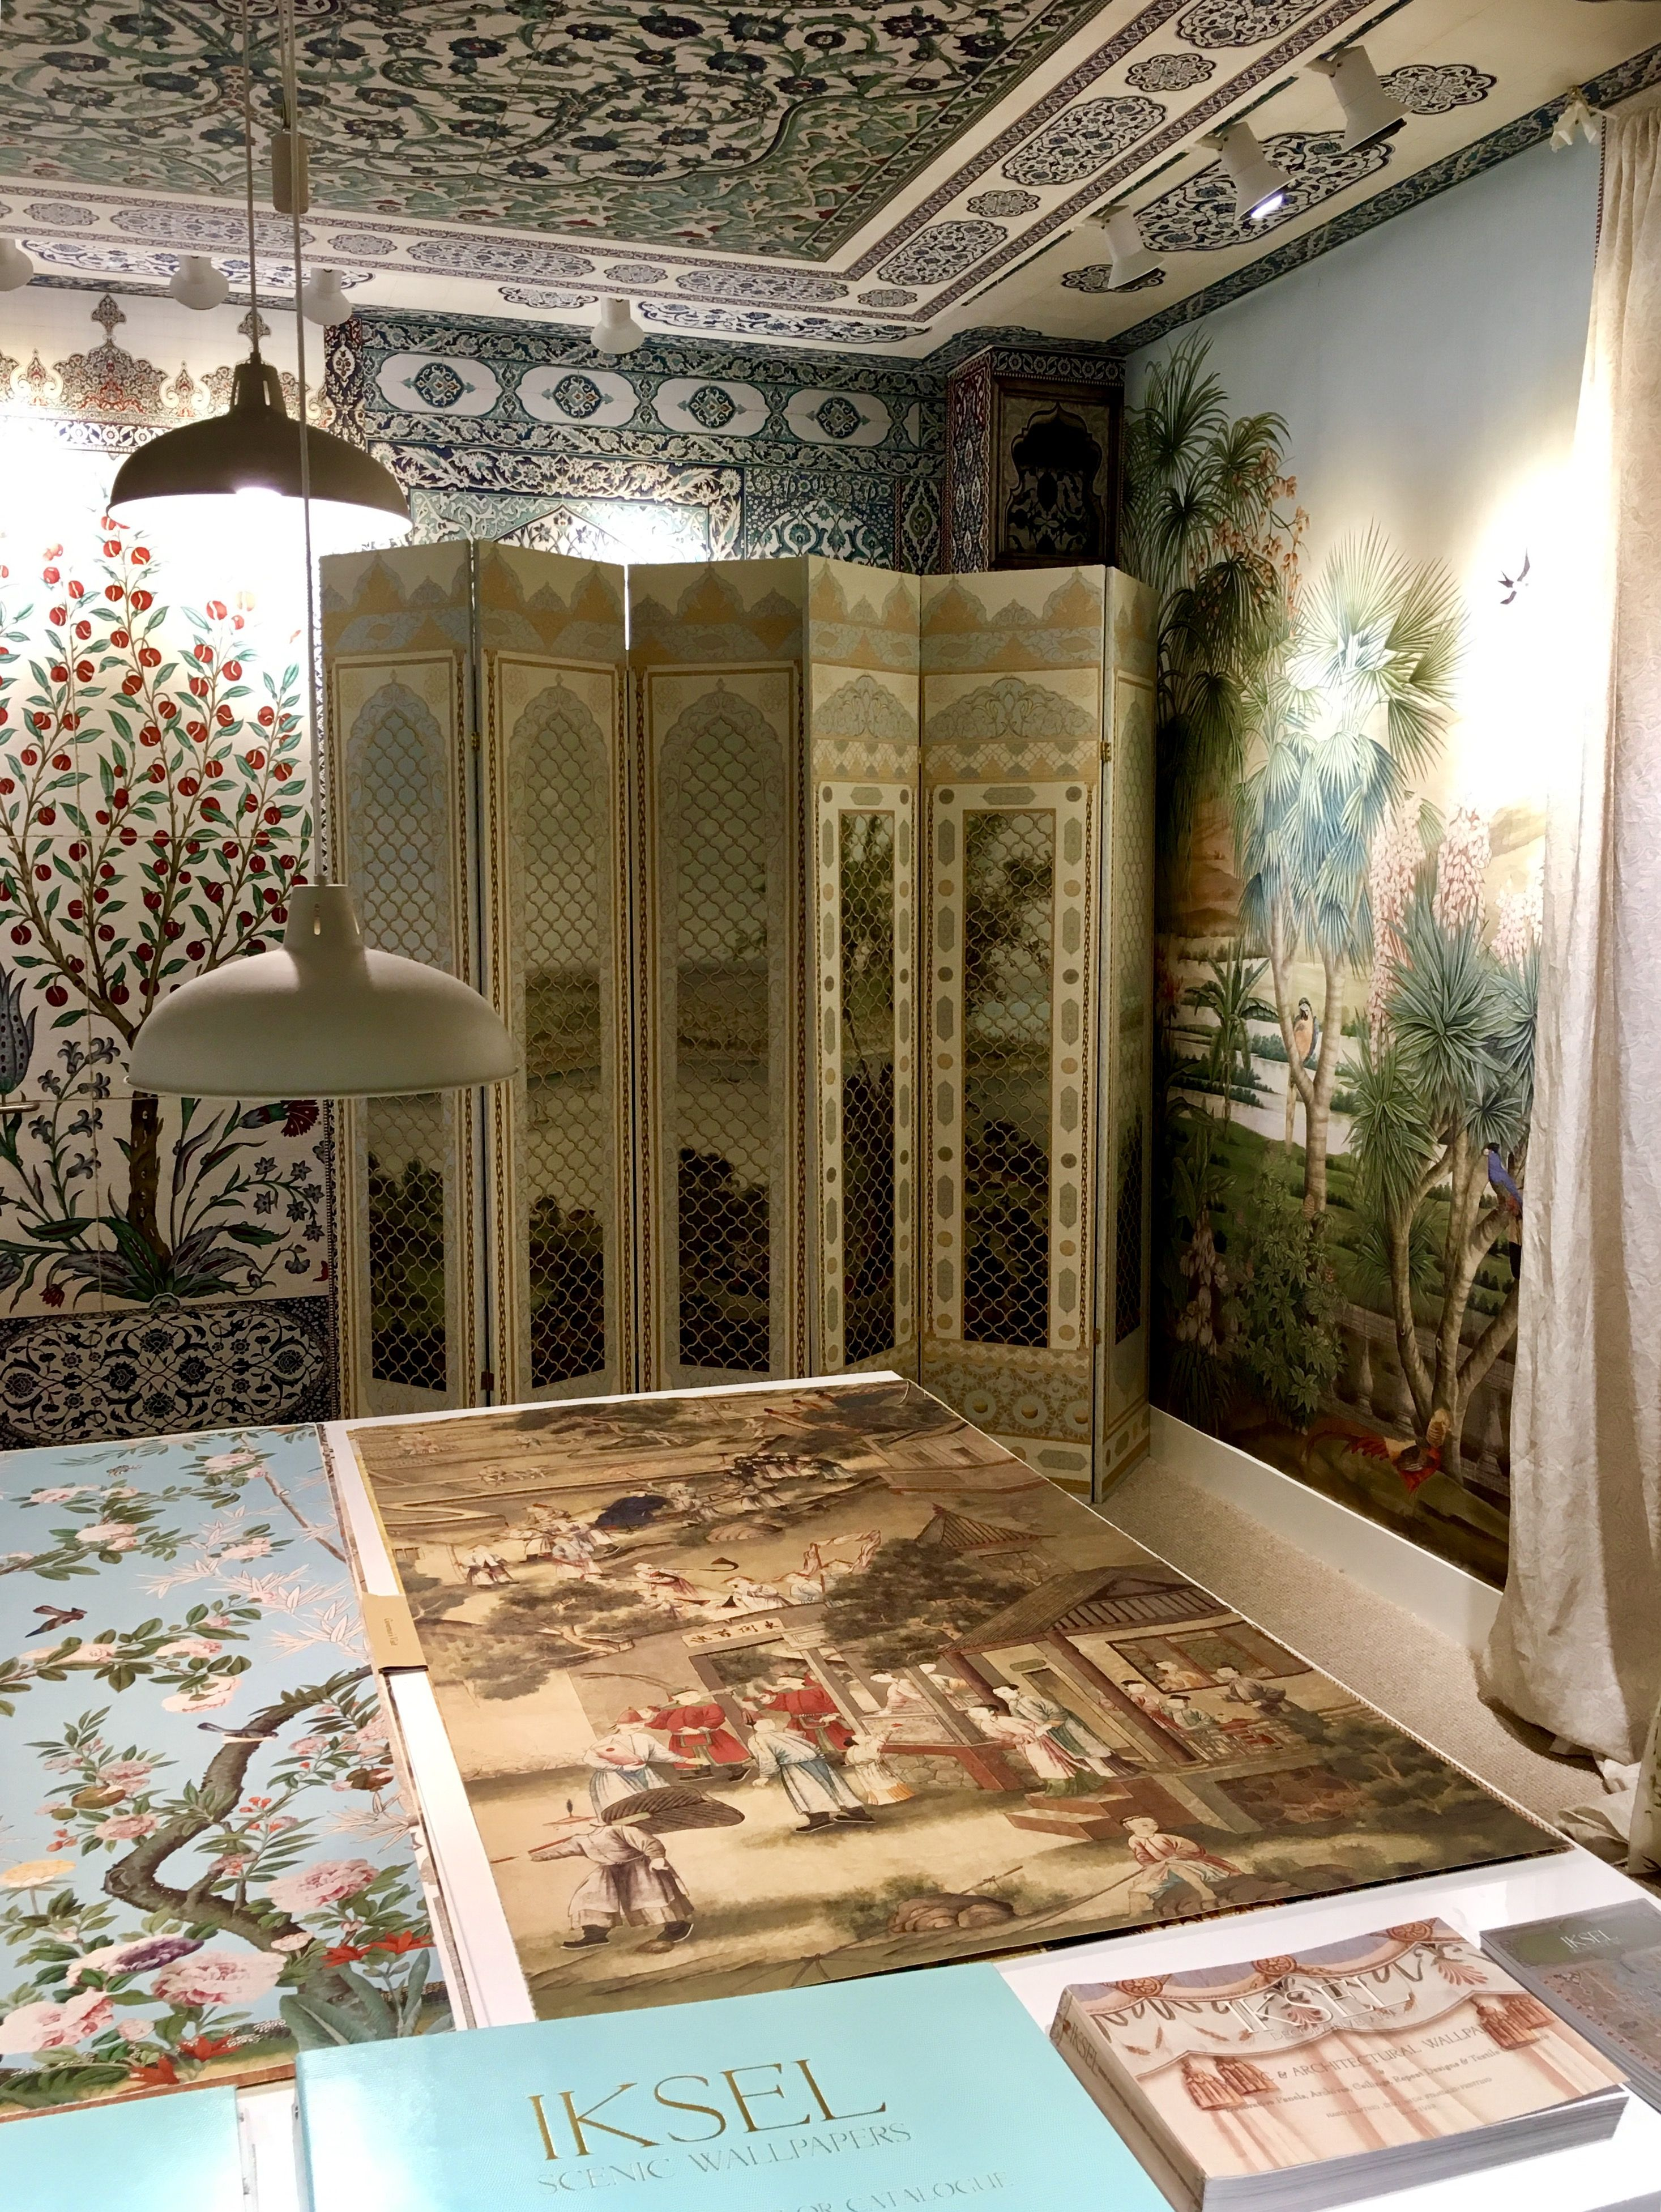 Iksel Decorative Arts Showroom in Chelsea Harbour Design Centre Scenic Wallpaper, Home Wallpaper, Wall